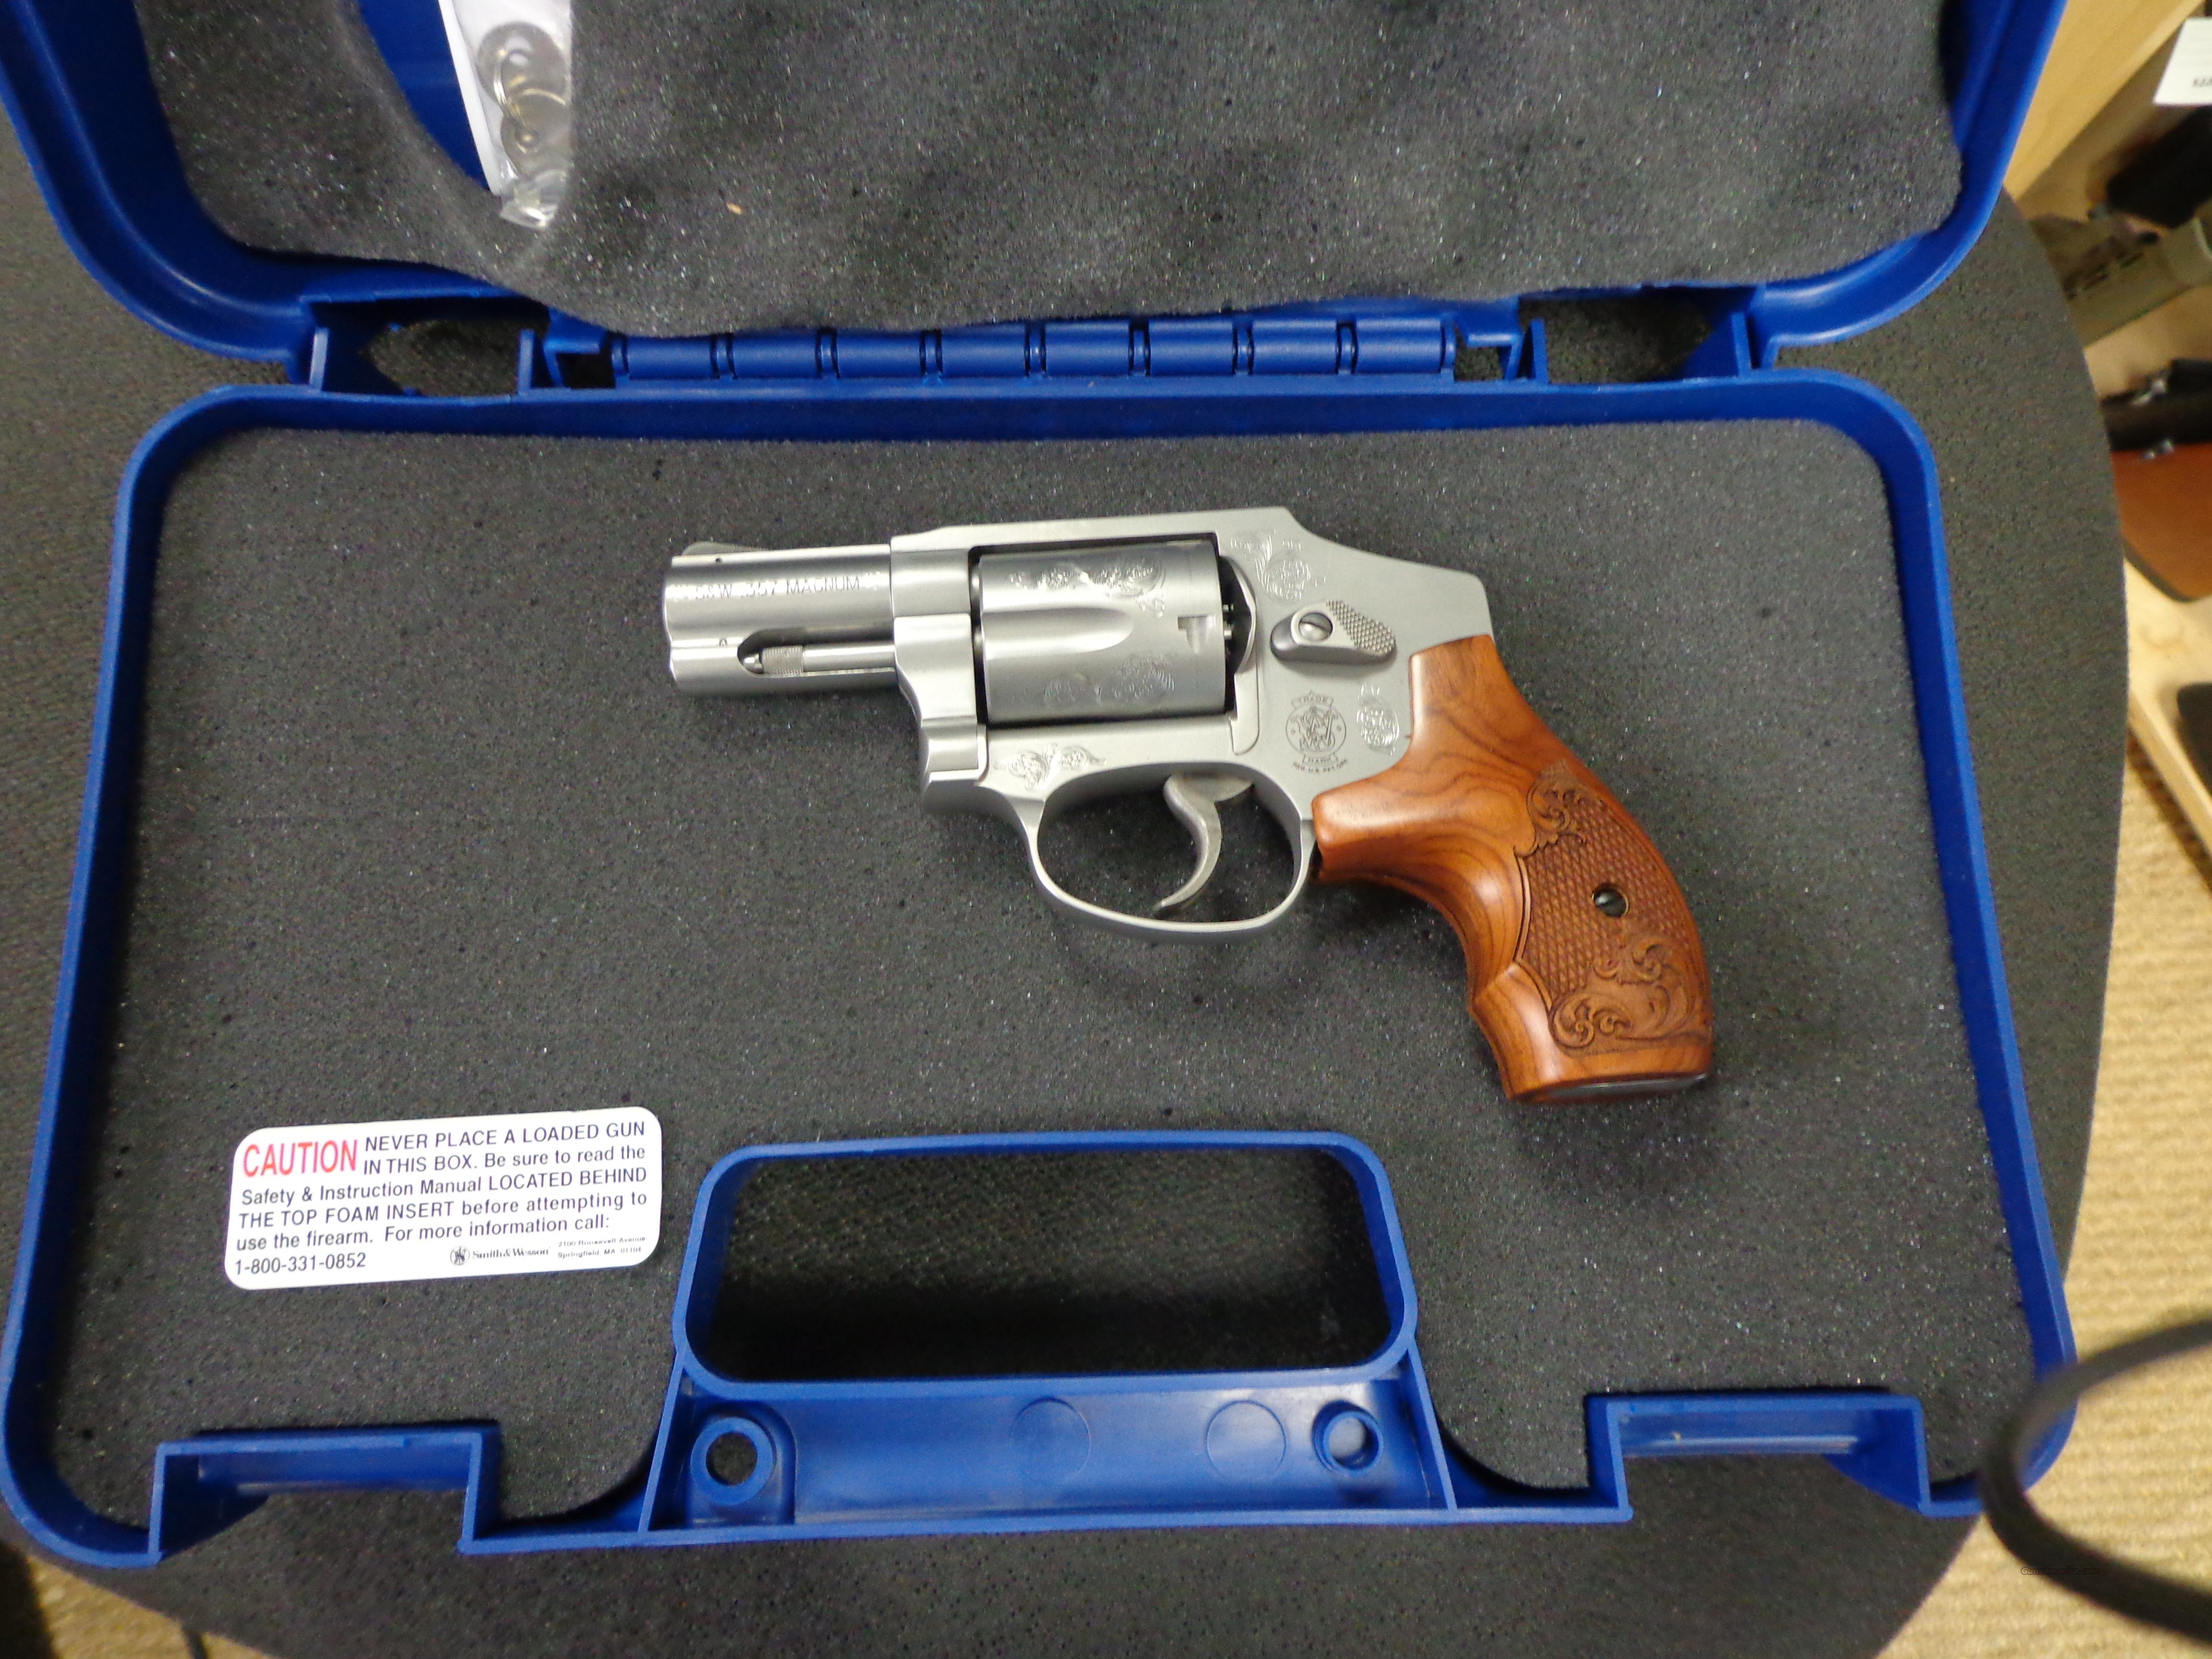 SMITH&WESSON 640 357mag W/CASE  Guns > Pistols > Smith & Wesson Revolvers > Pocket Pistols